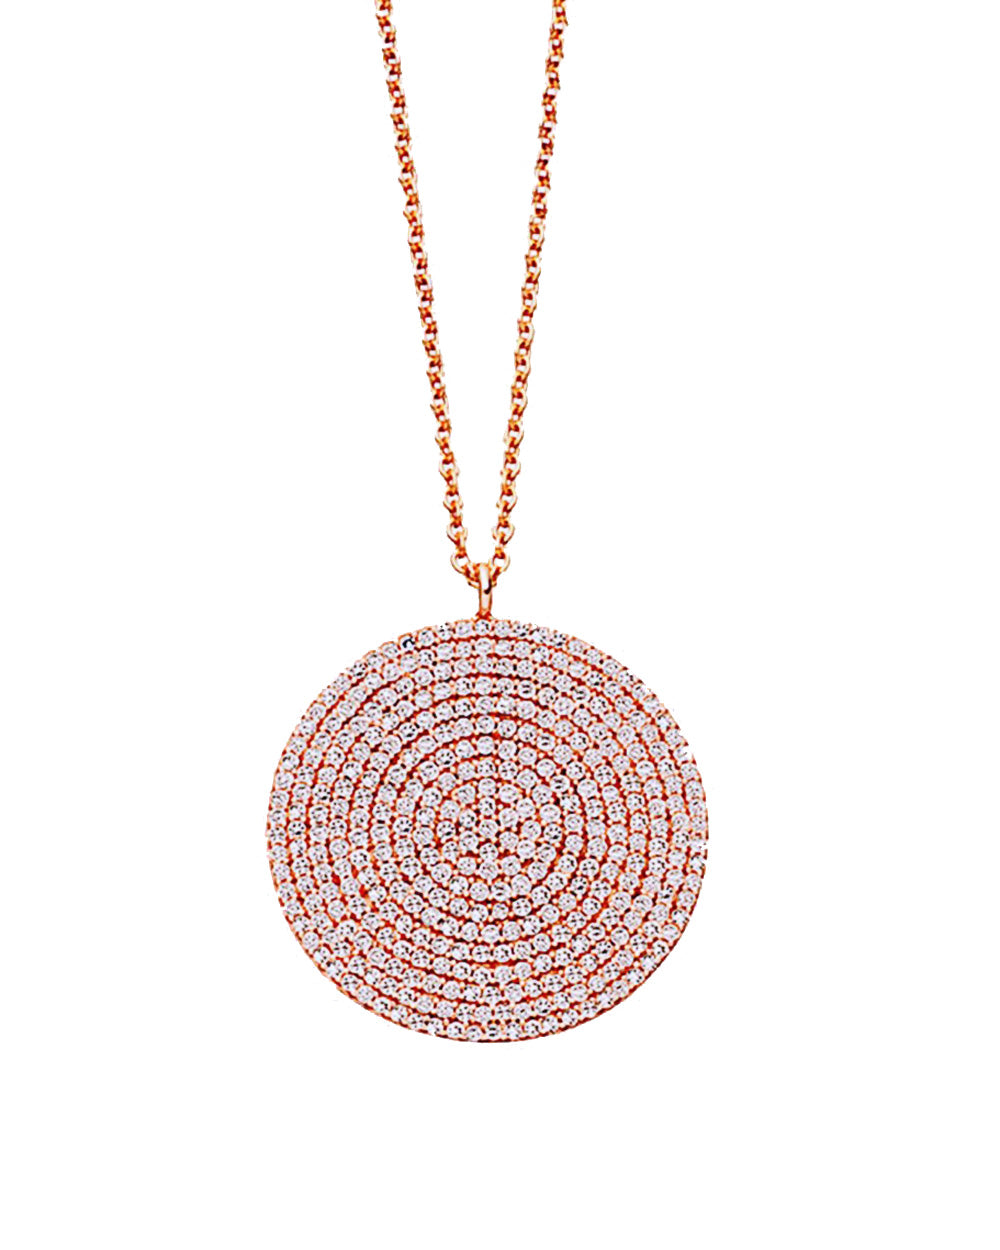 Starlight Disk Pendant Necklace in Rose Gold